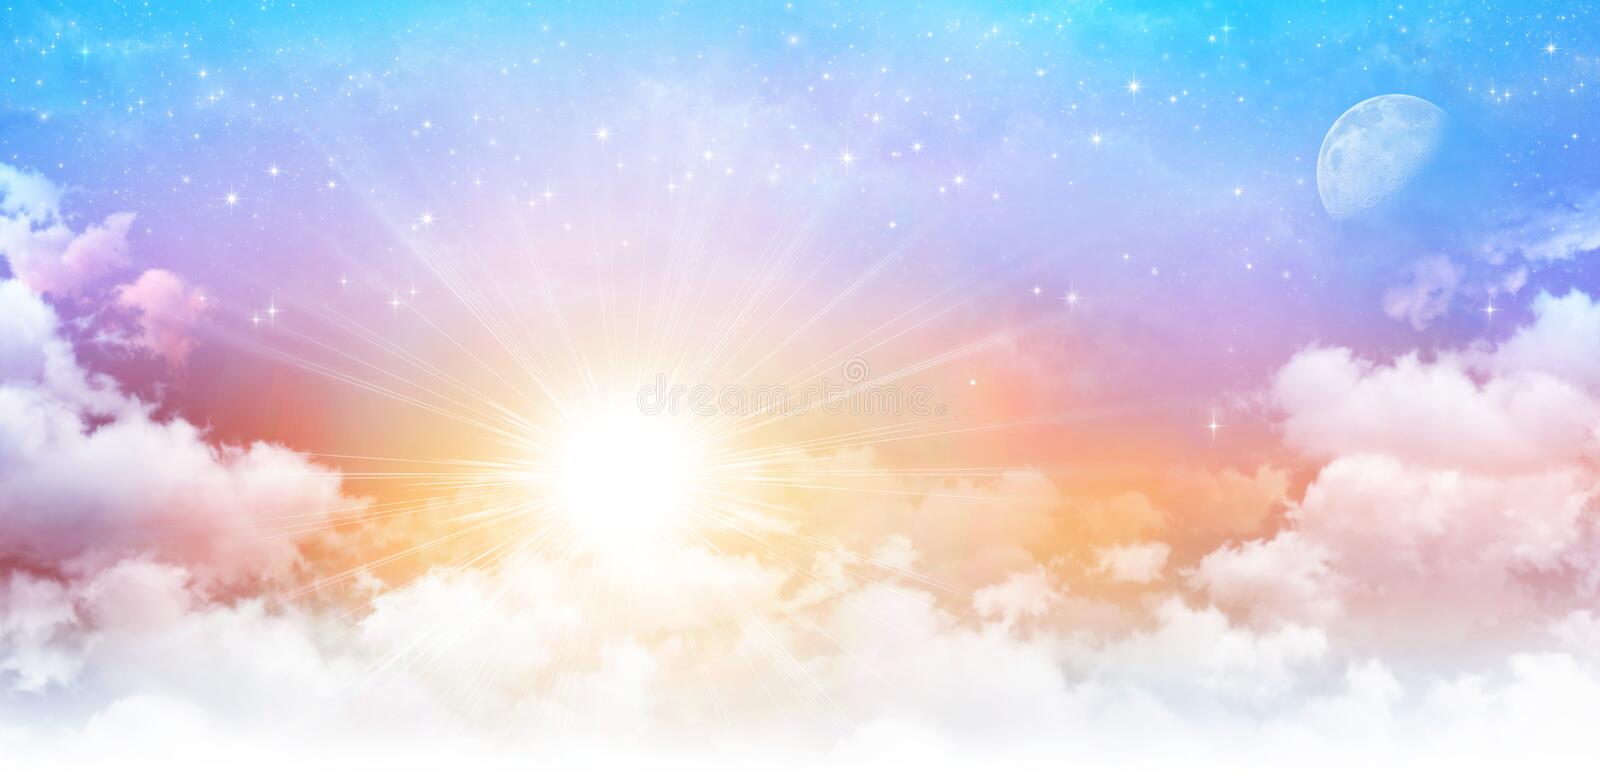 Dreamy sky scape royalty free stock photography